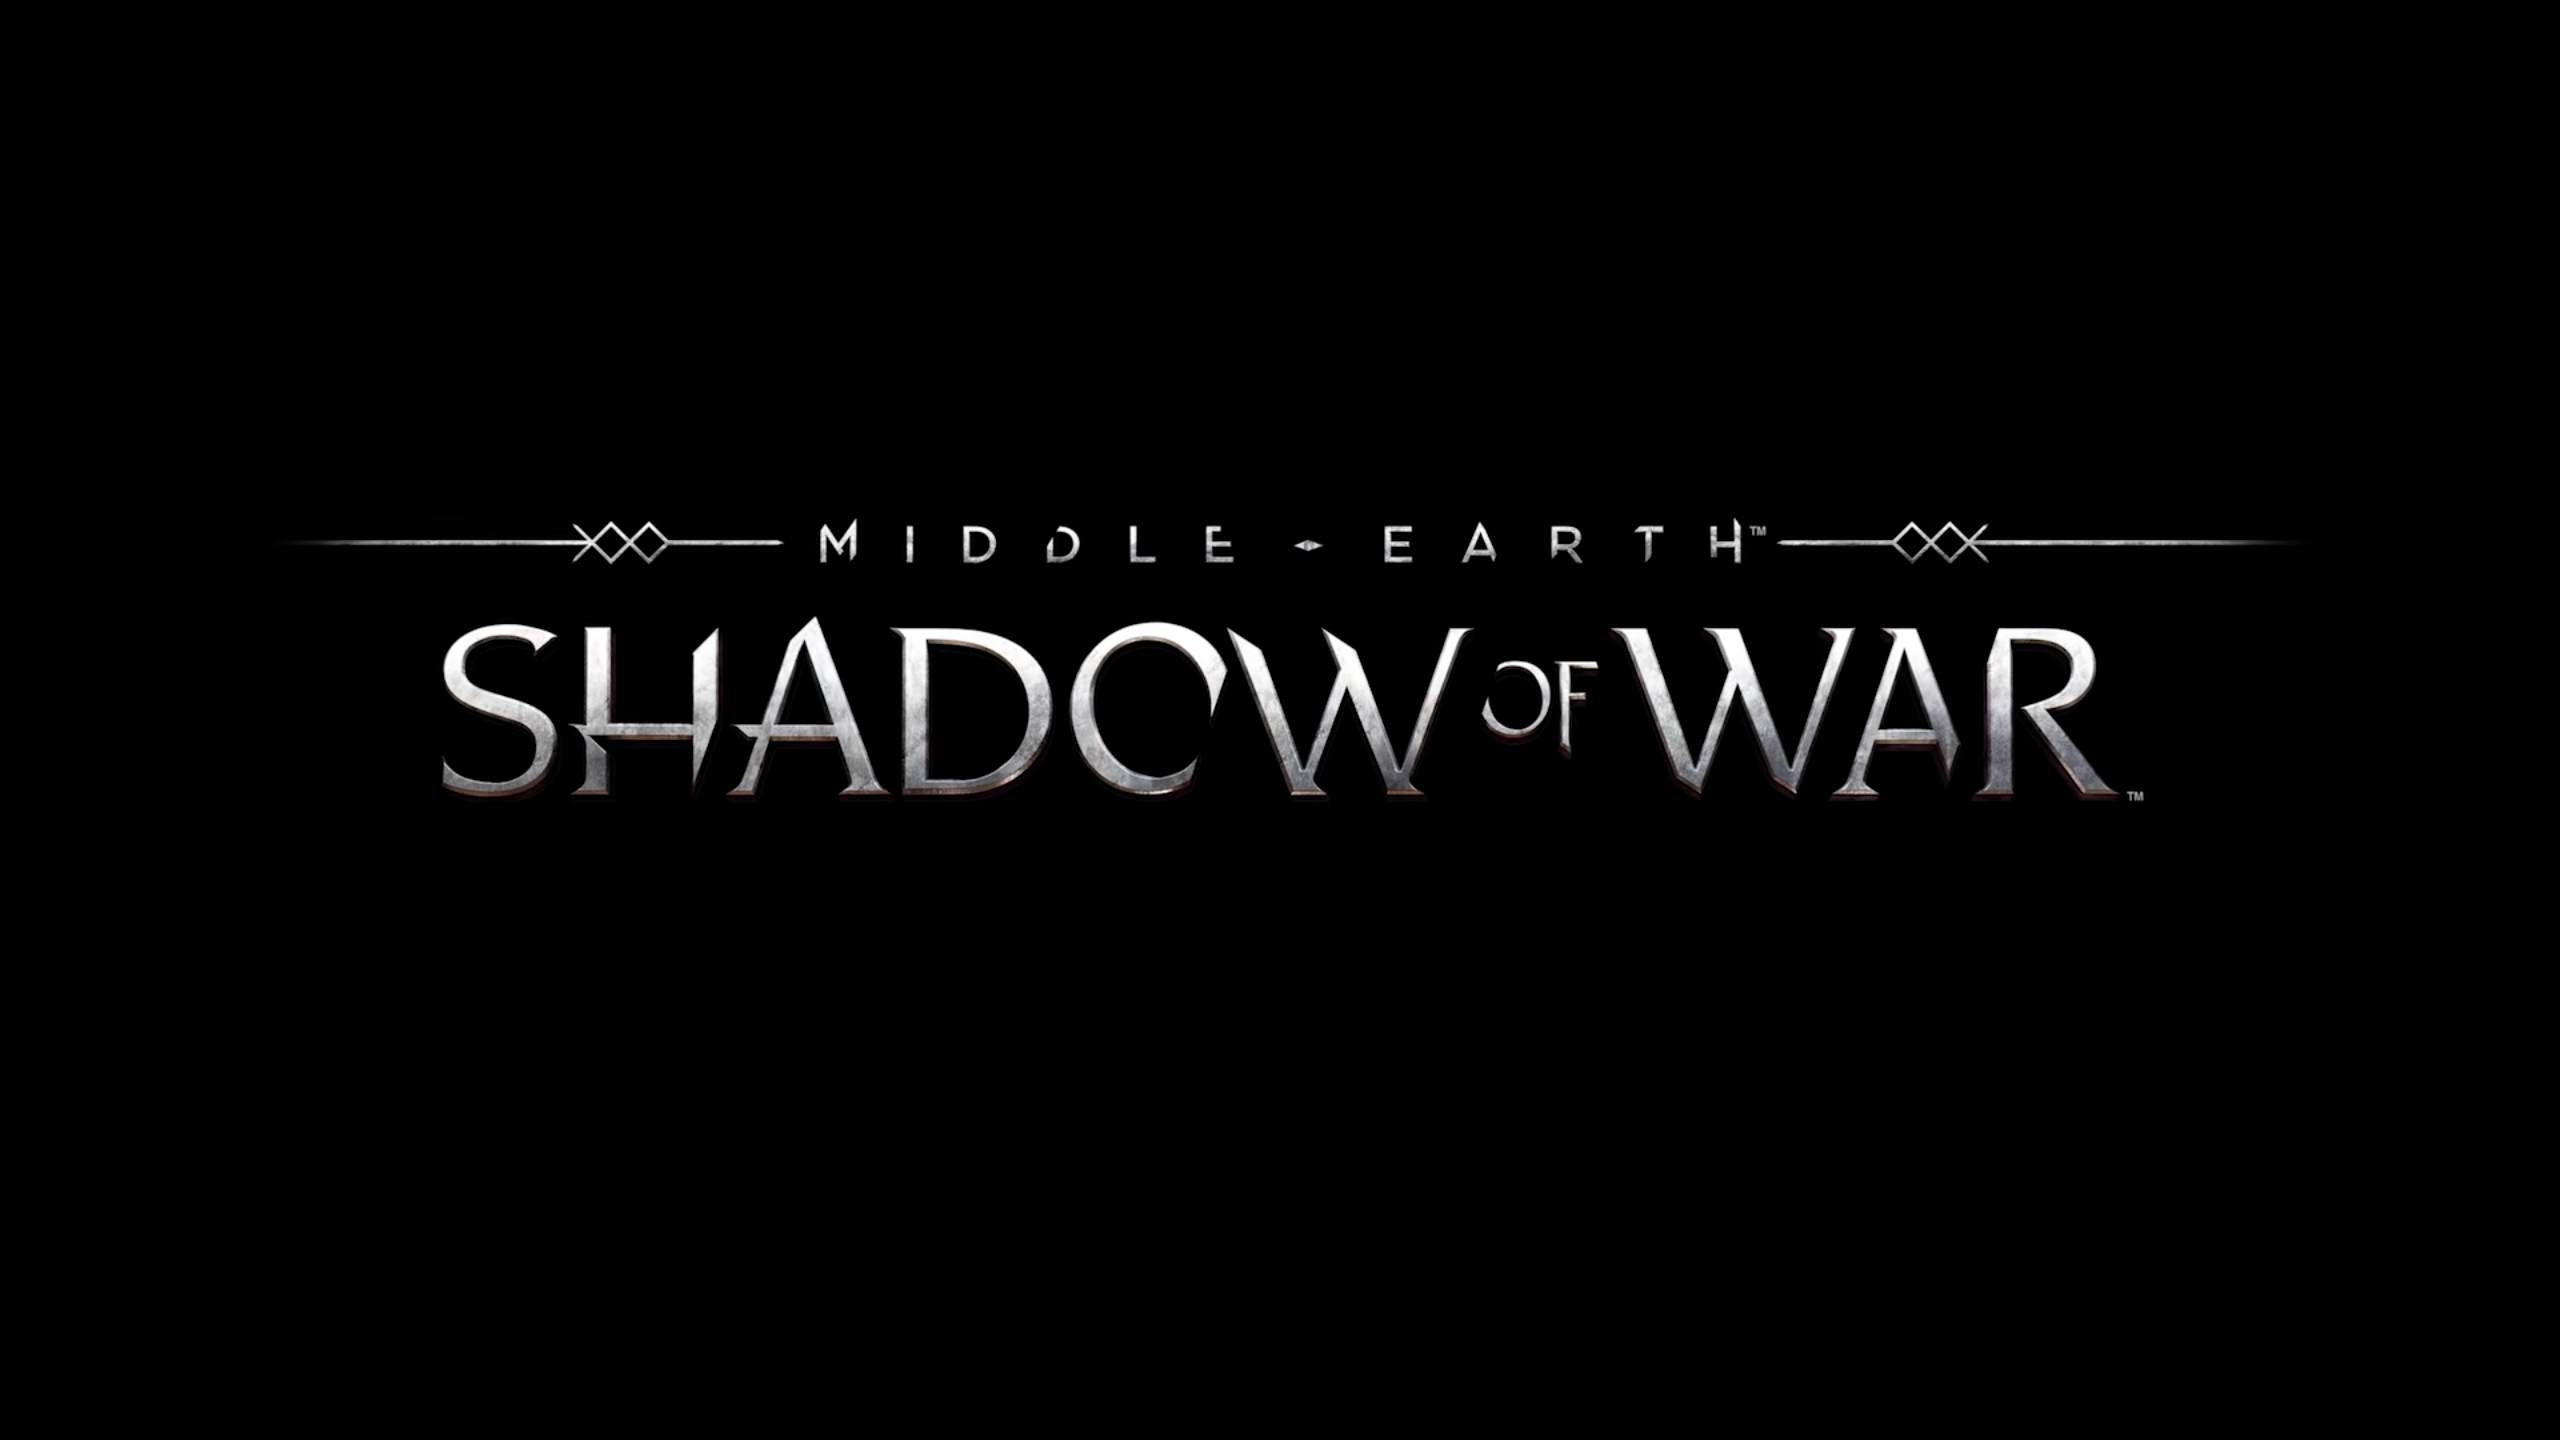 Middle earth Shadow Of War Wallpapers Pictures Images 2560x1440